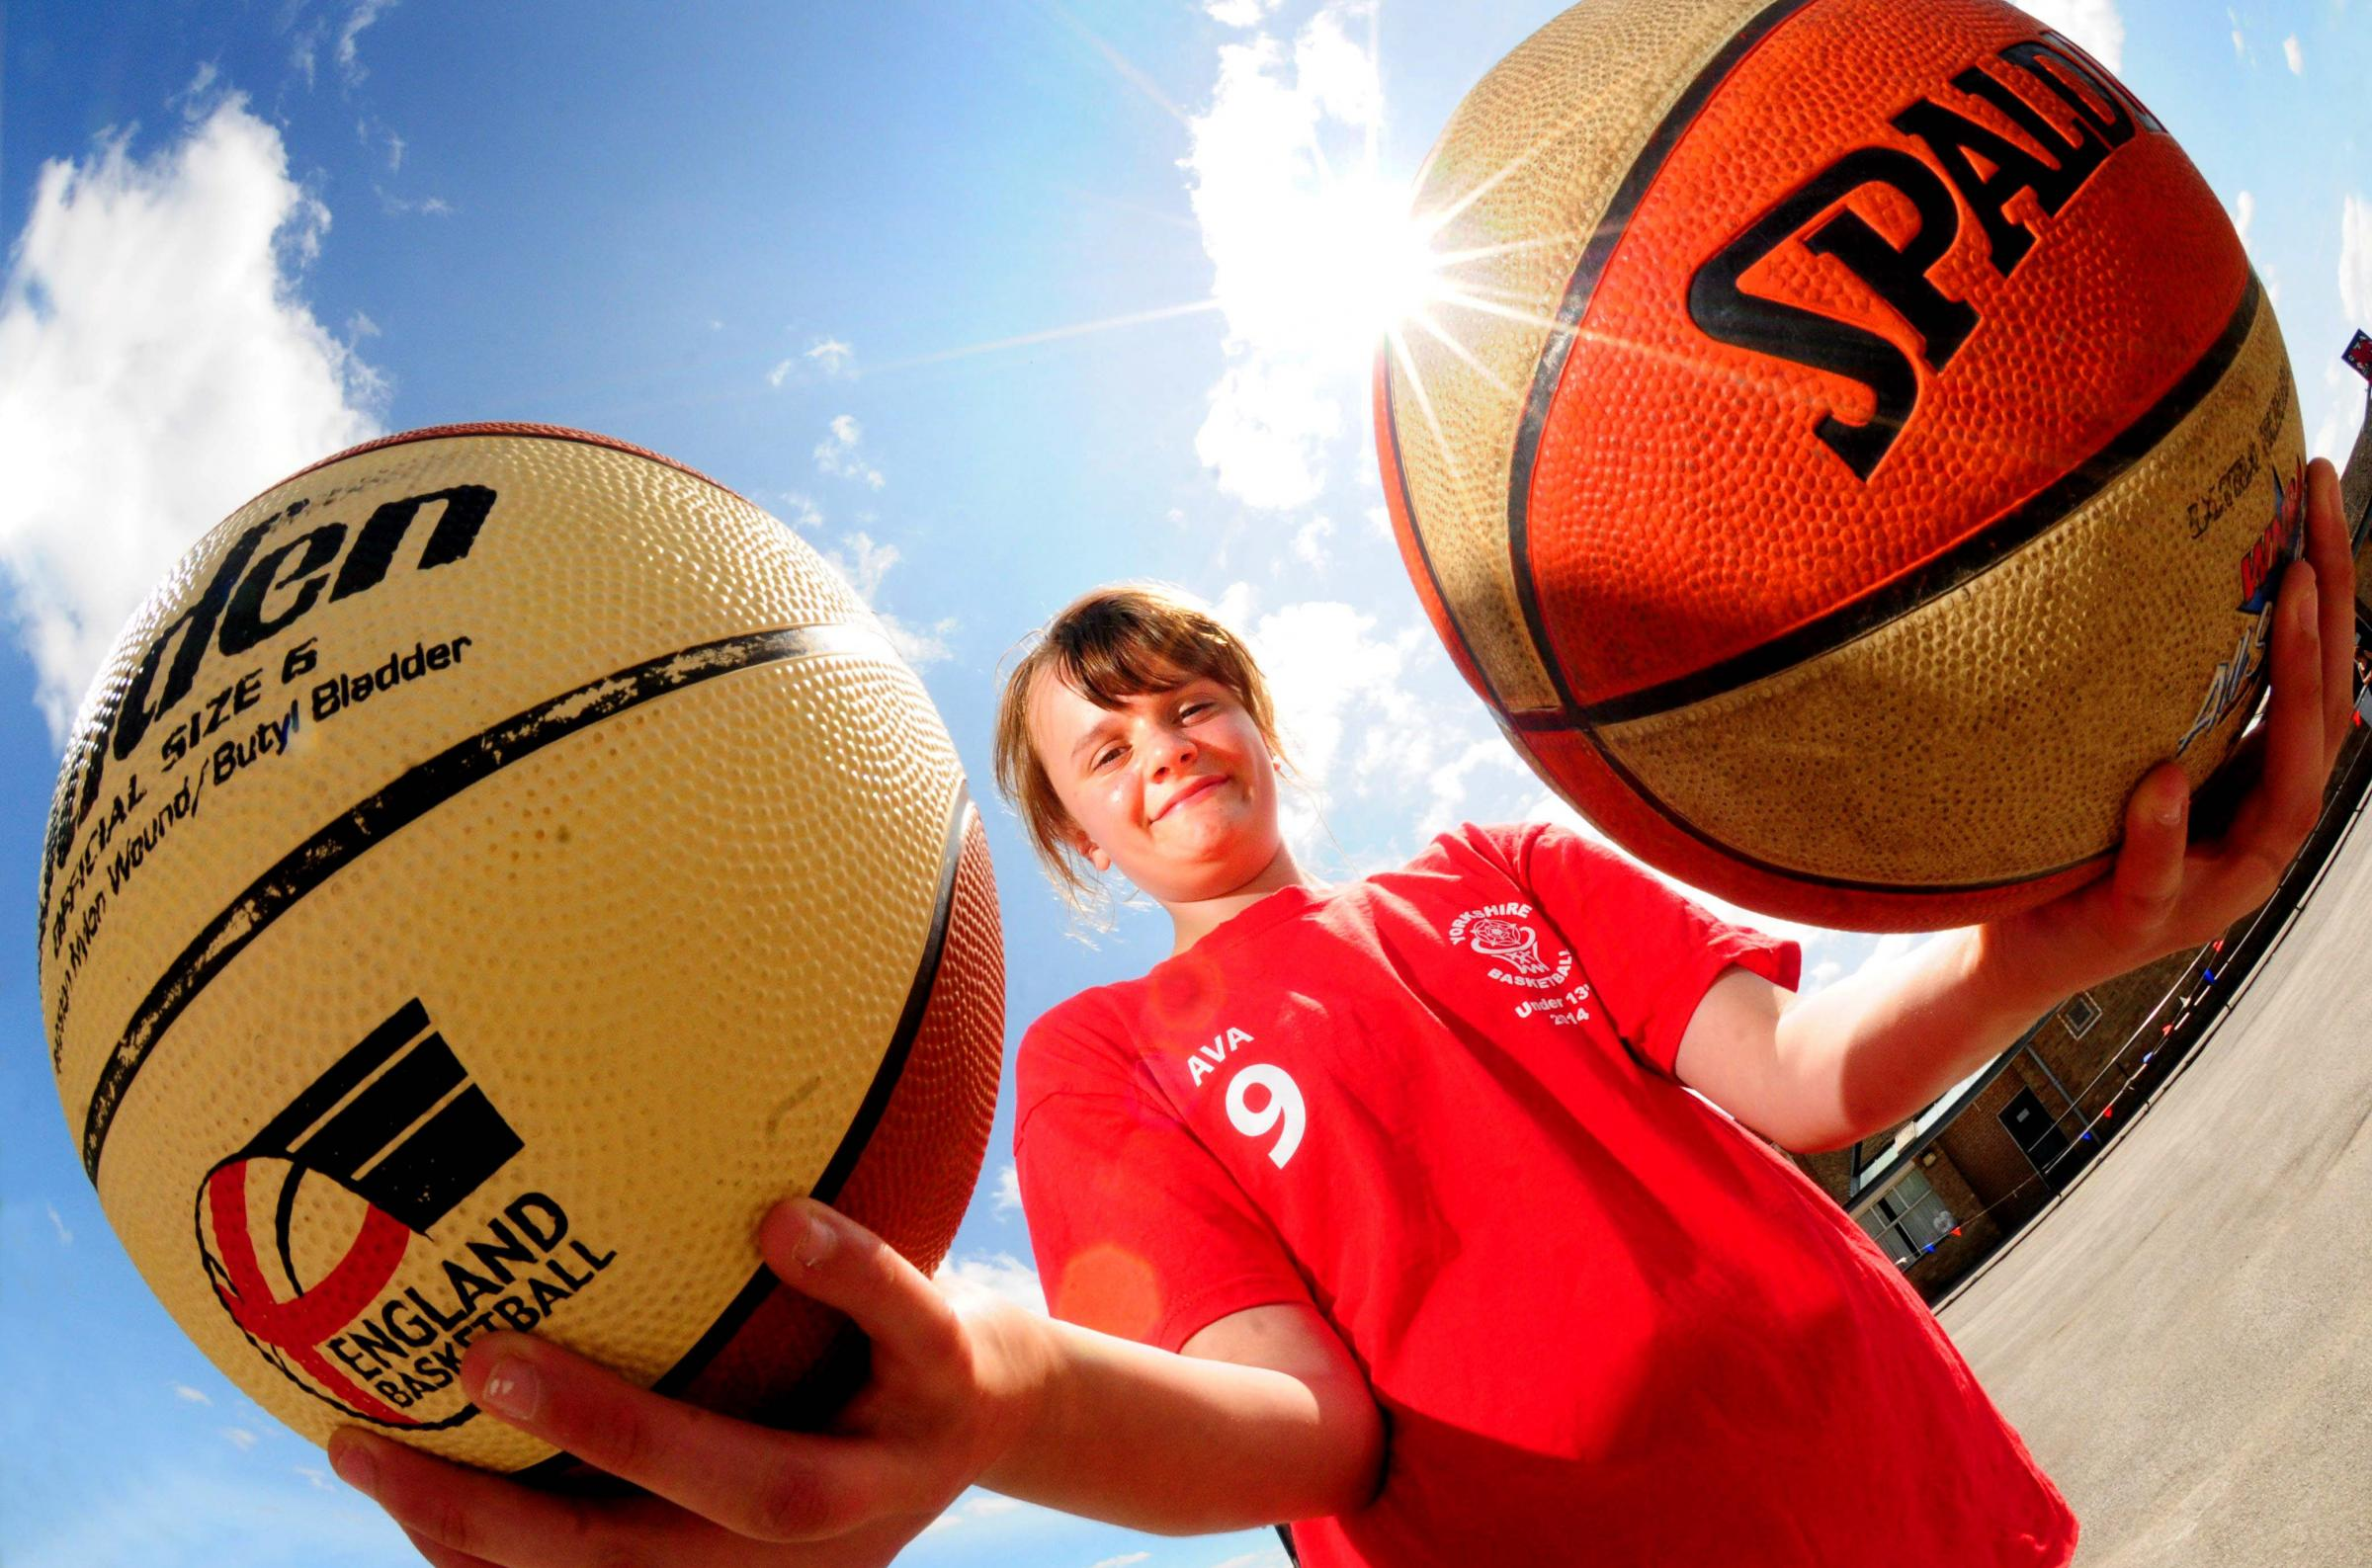 SPORTING HOPE: Fulford School pupil Ava Patchesa at her basketball fundraiser.